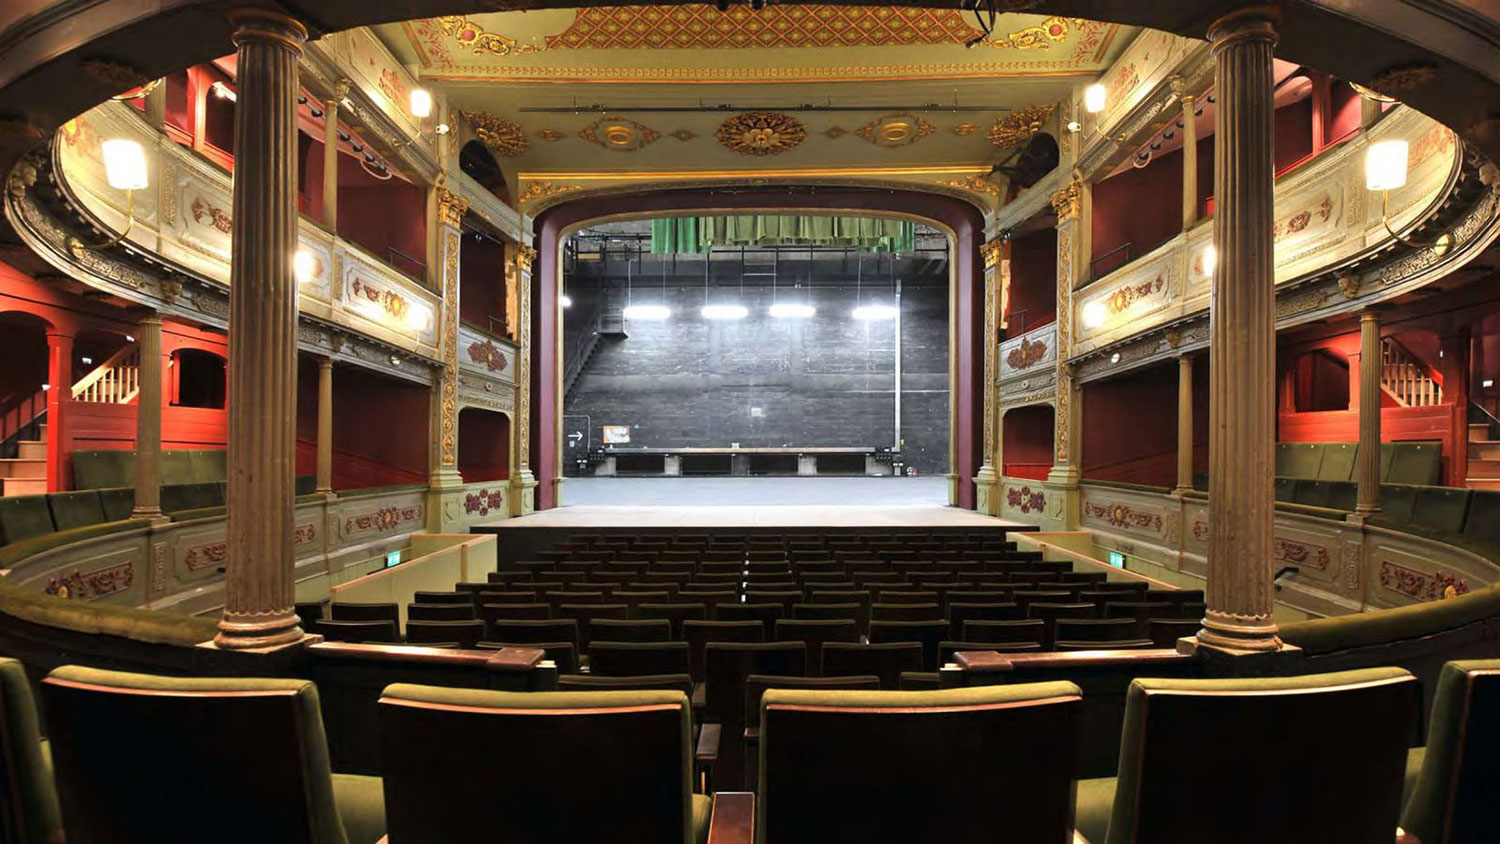 Bristol Old Vic auditorium looking towards the stage - image courtesy Bristol Old Vic